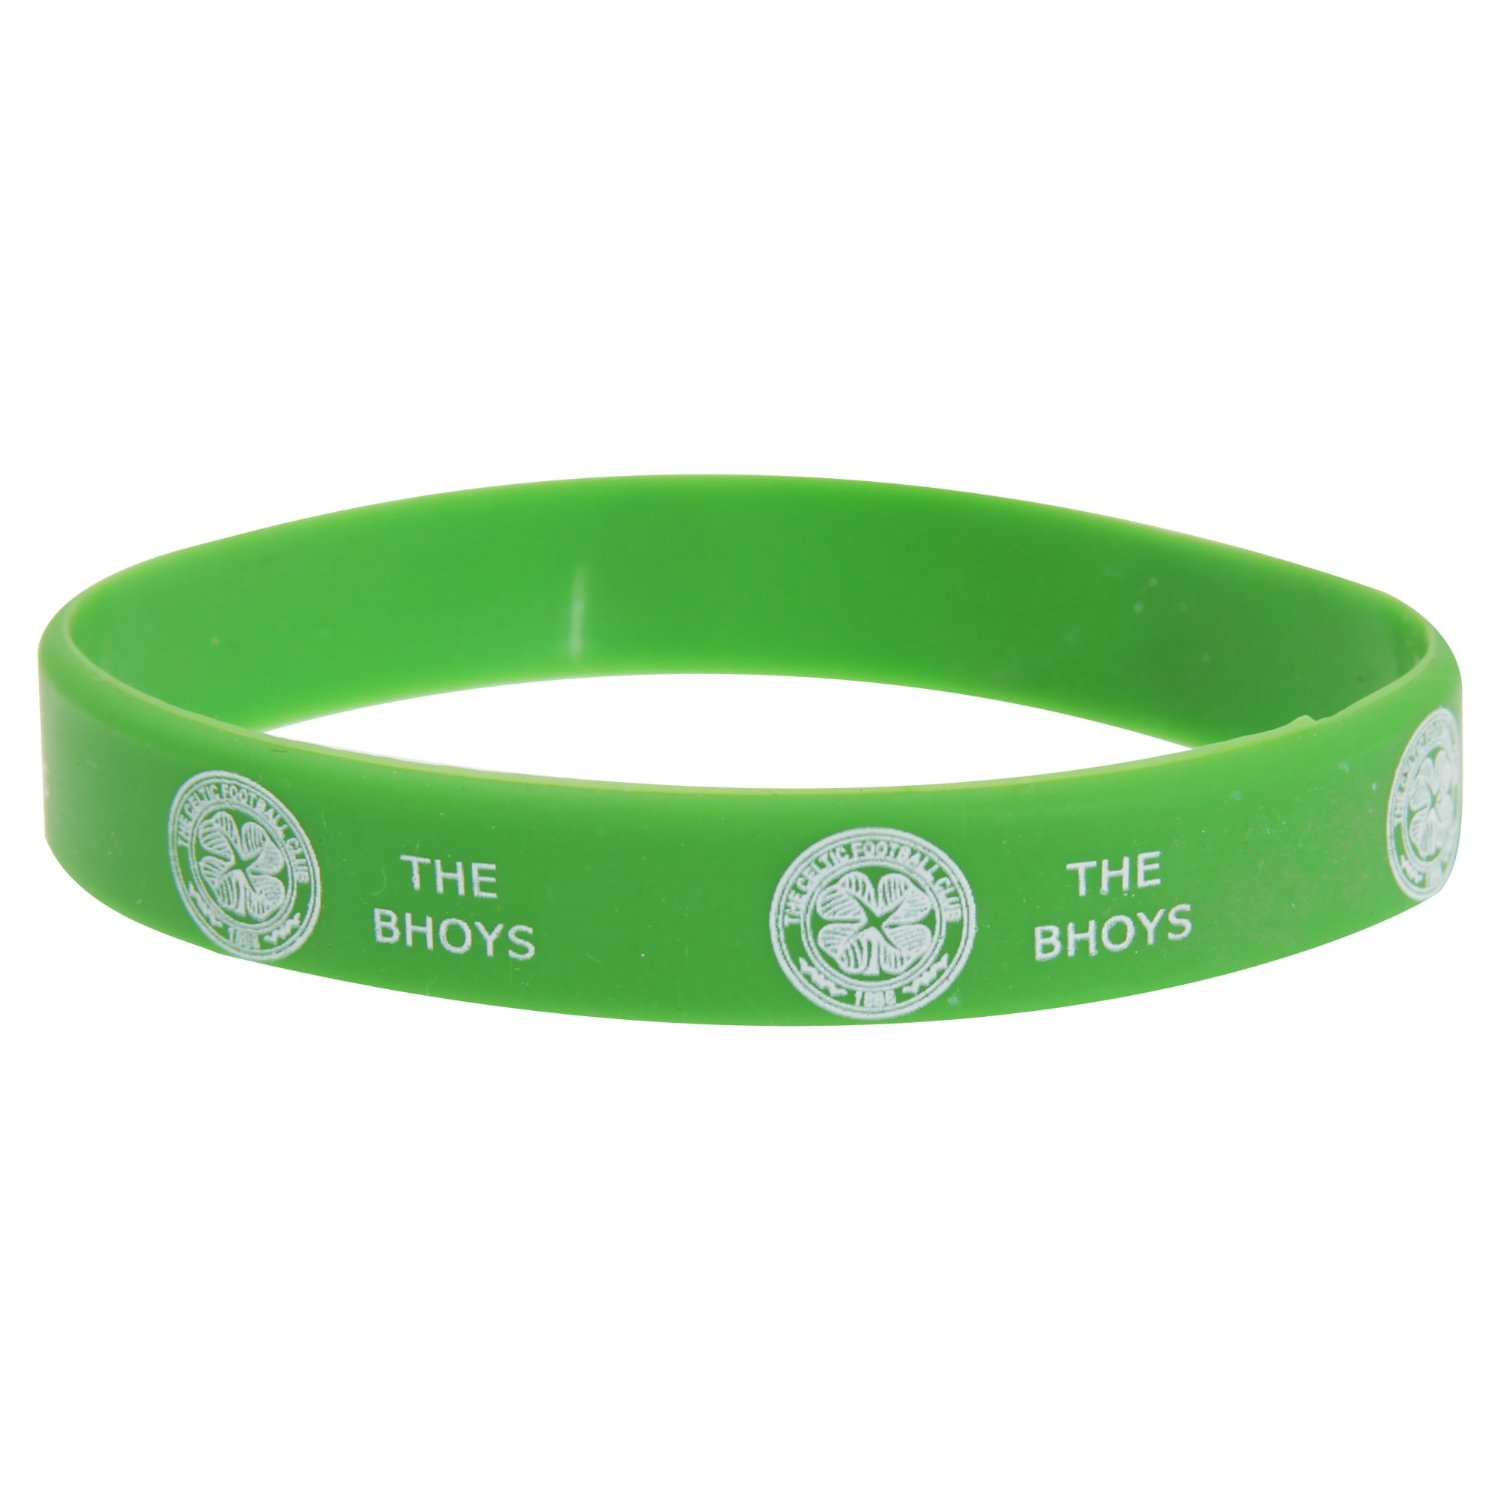 Celtic FC Official Single Rubber Football Crest Wristband